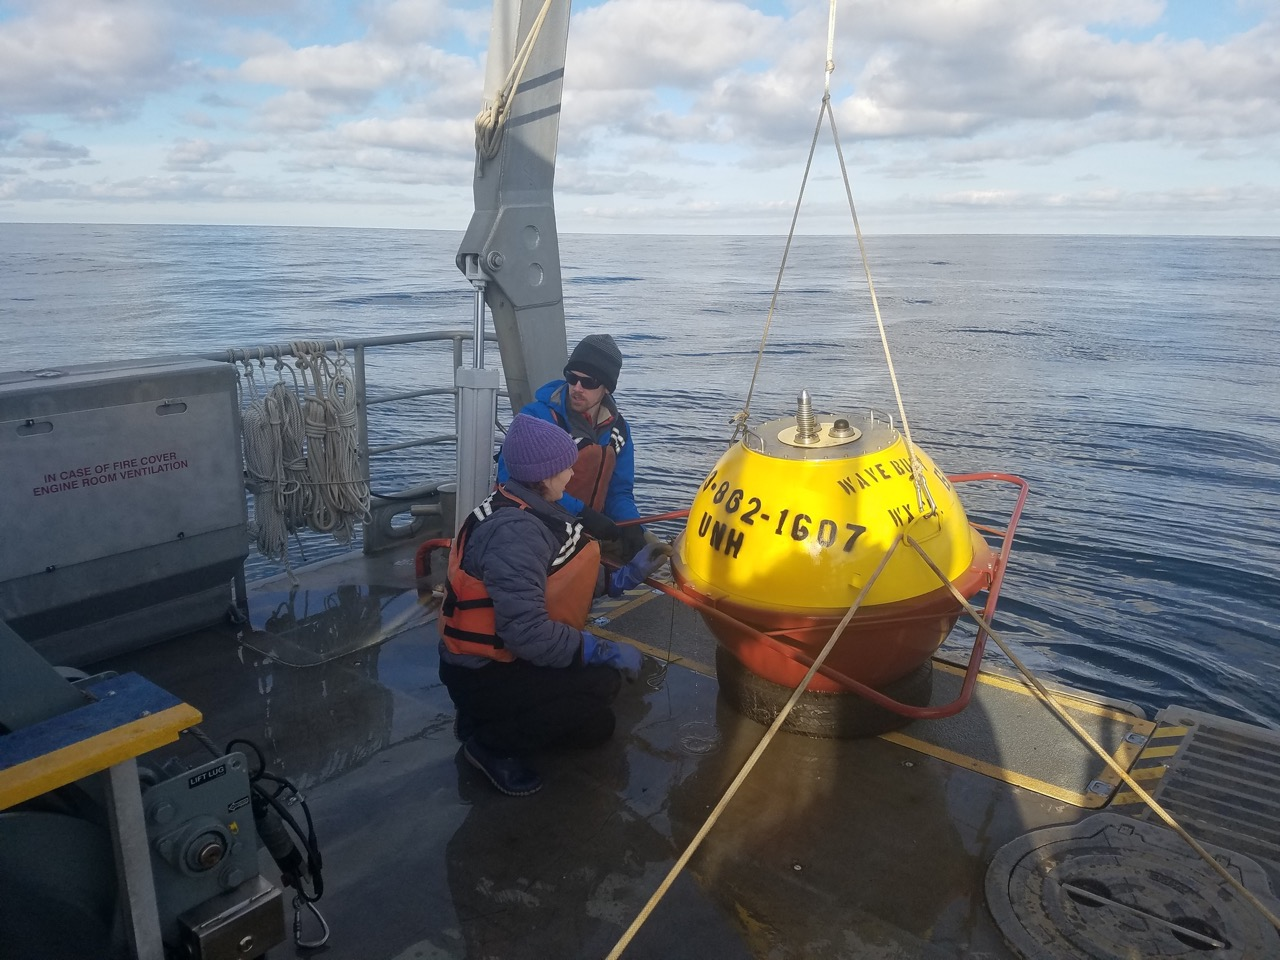 Buoy antenna replacement